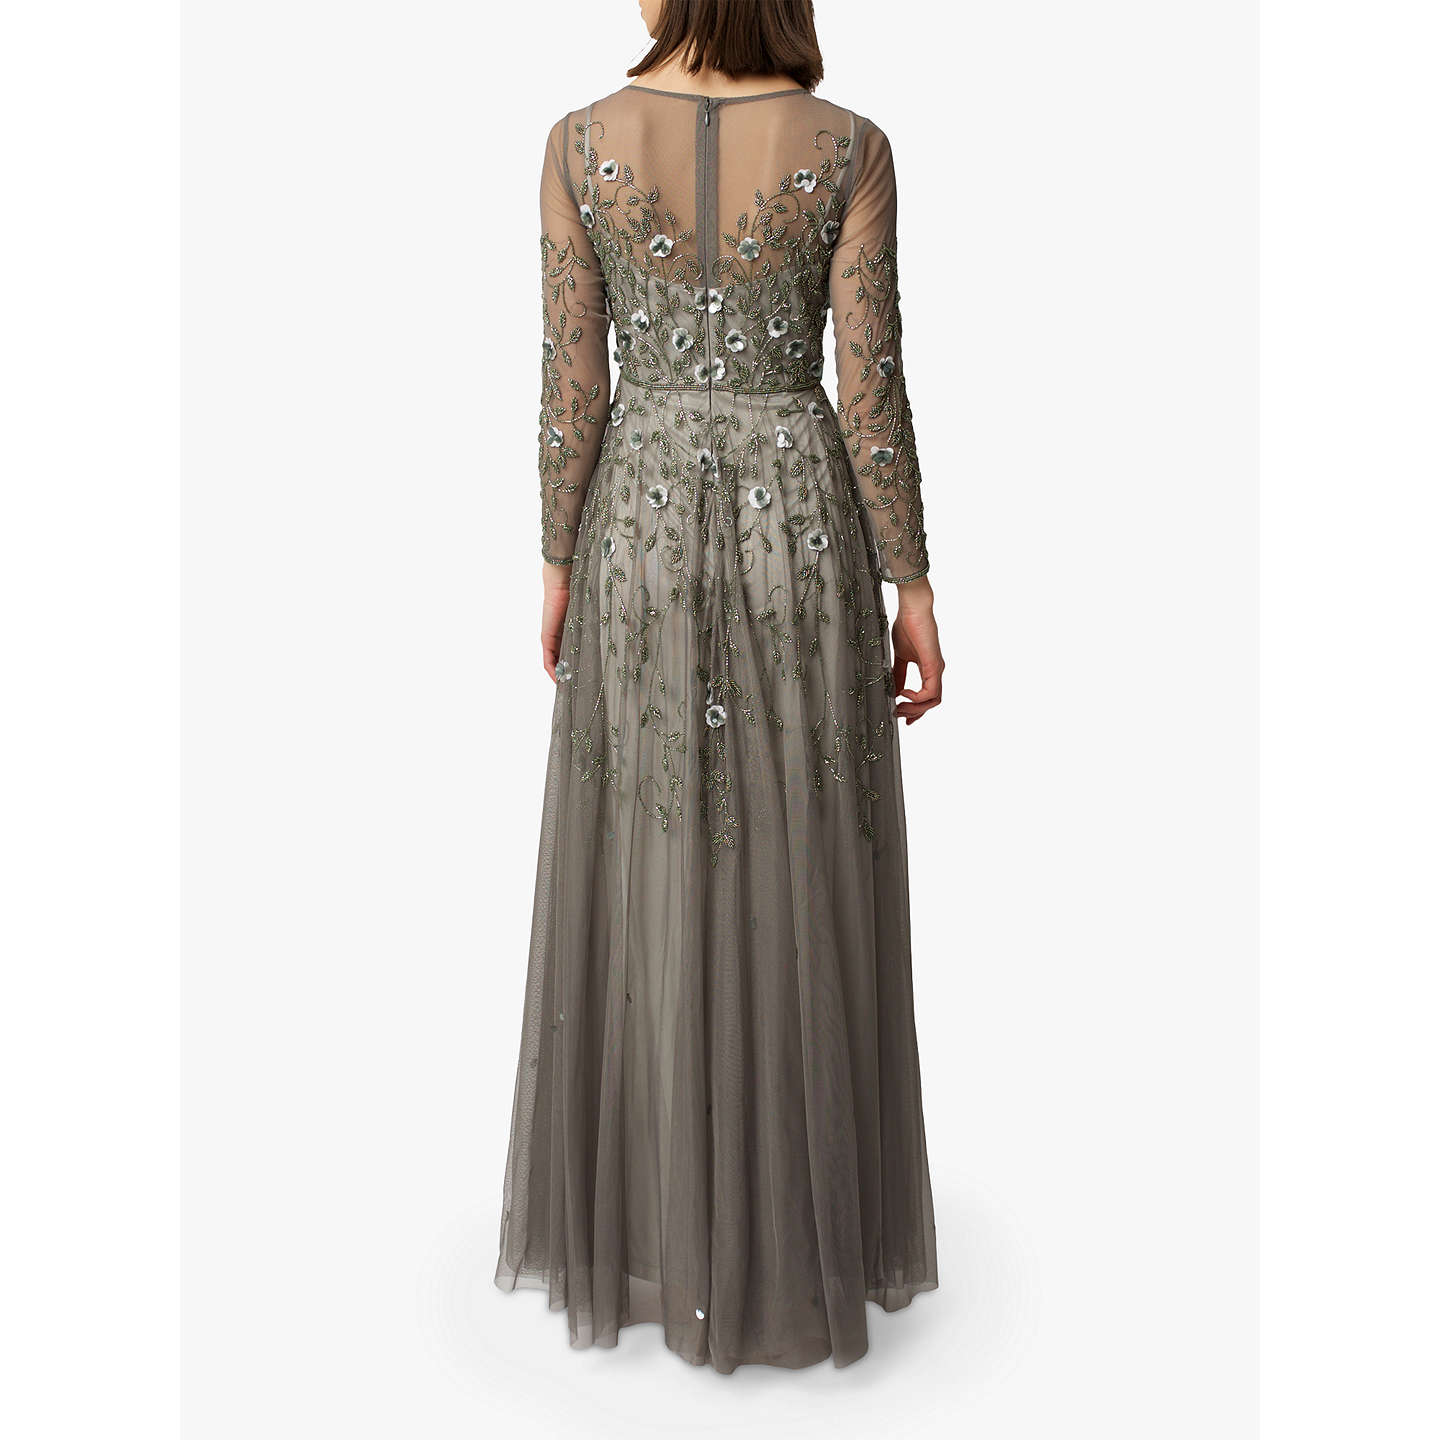 BuyRaishma Floral Embroidered Gown, Duck Egg, 8 Online at johnlewis.com